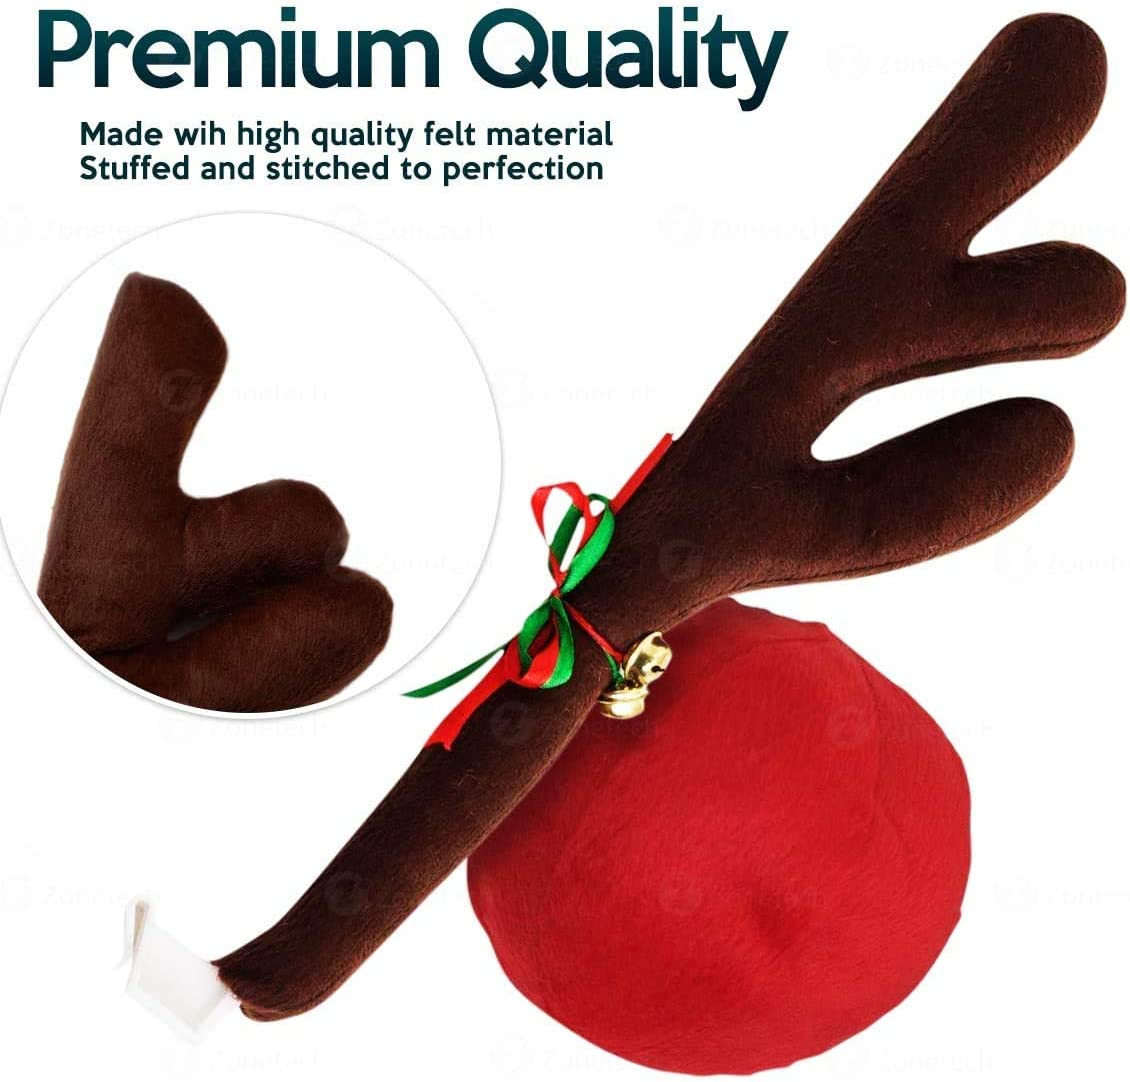 Zone Tech Christmas Car Reindeer Antlers and Nose Set Premium Quality Window Roof-Top and Grille Rudolph Car Accessory Jingle Bell Antlers and Nose Car Costume Decoration Set for Holiday